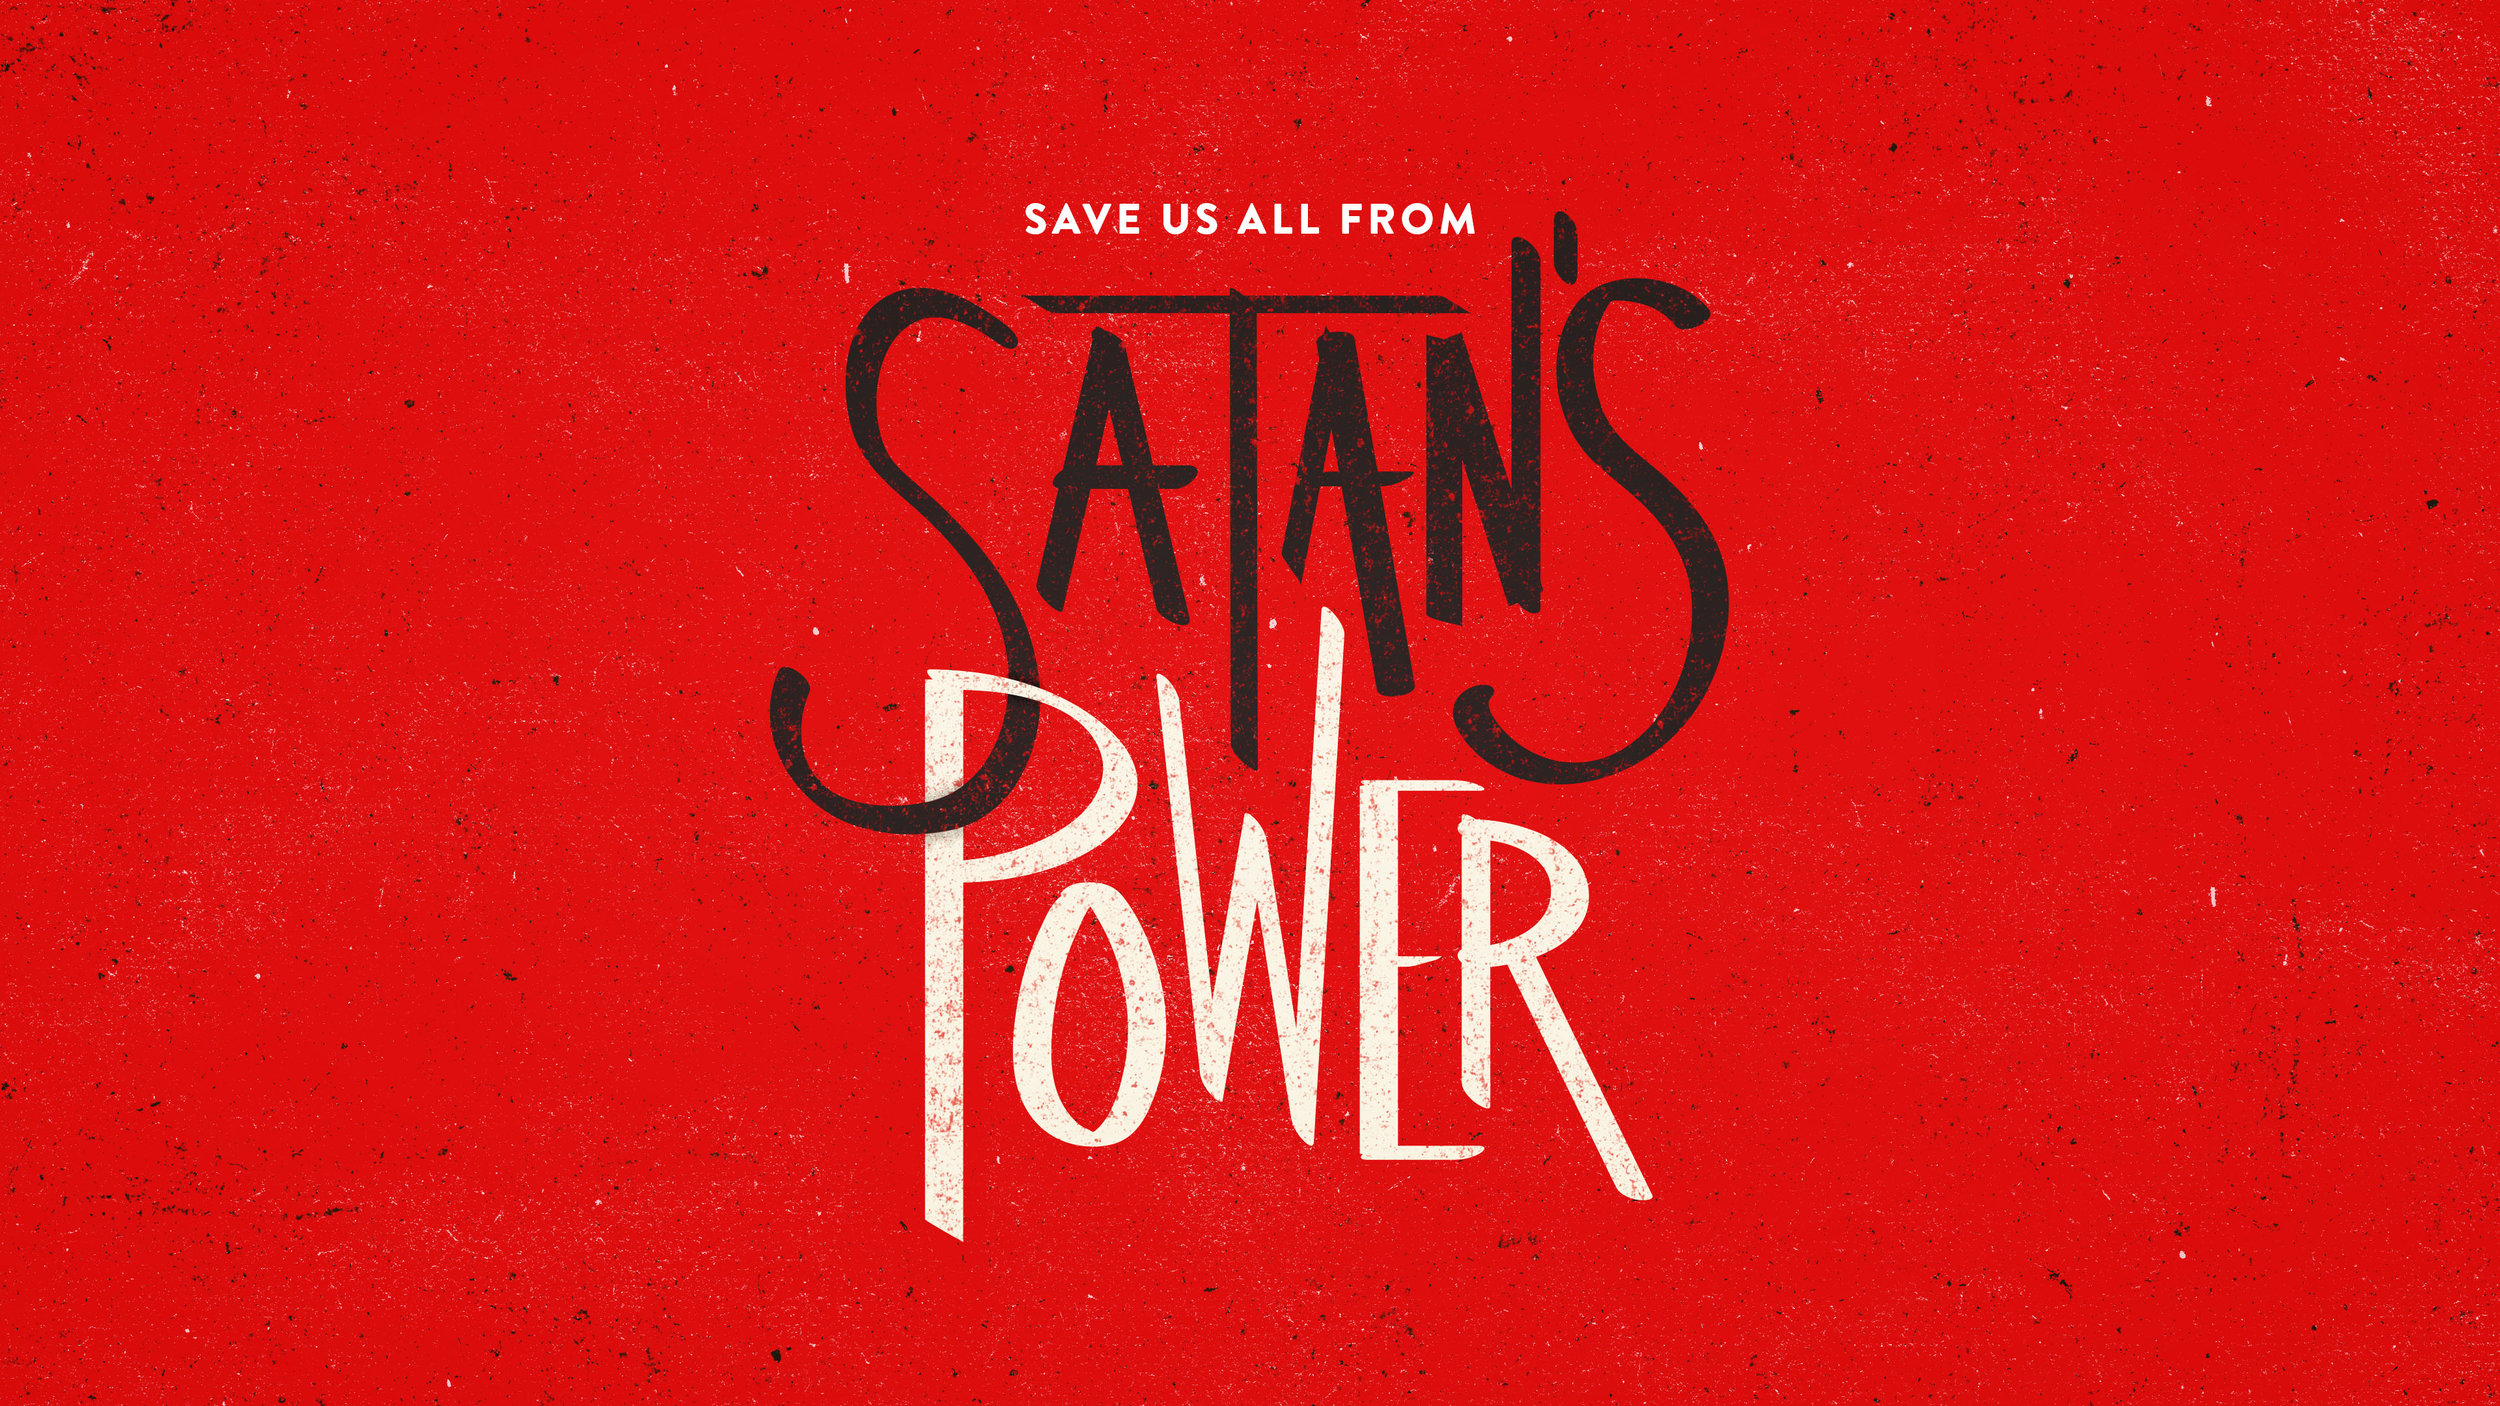 Save-Us-All-From-Satans-Power_02_16x9_widescreen.jpg